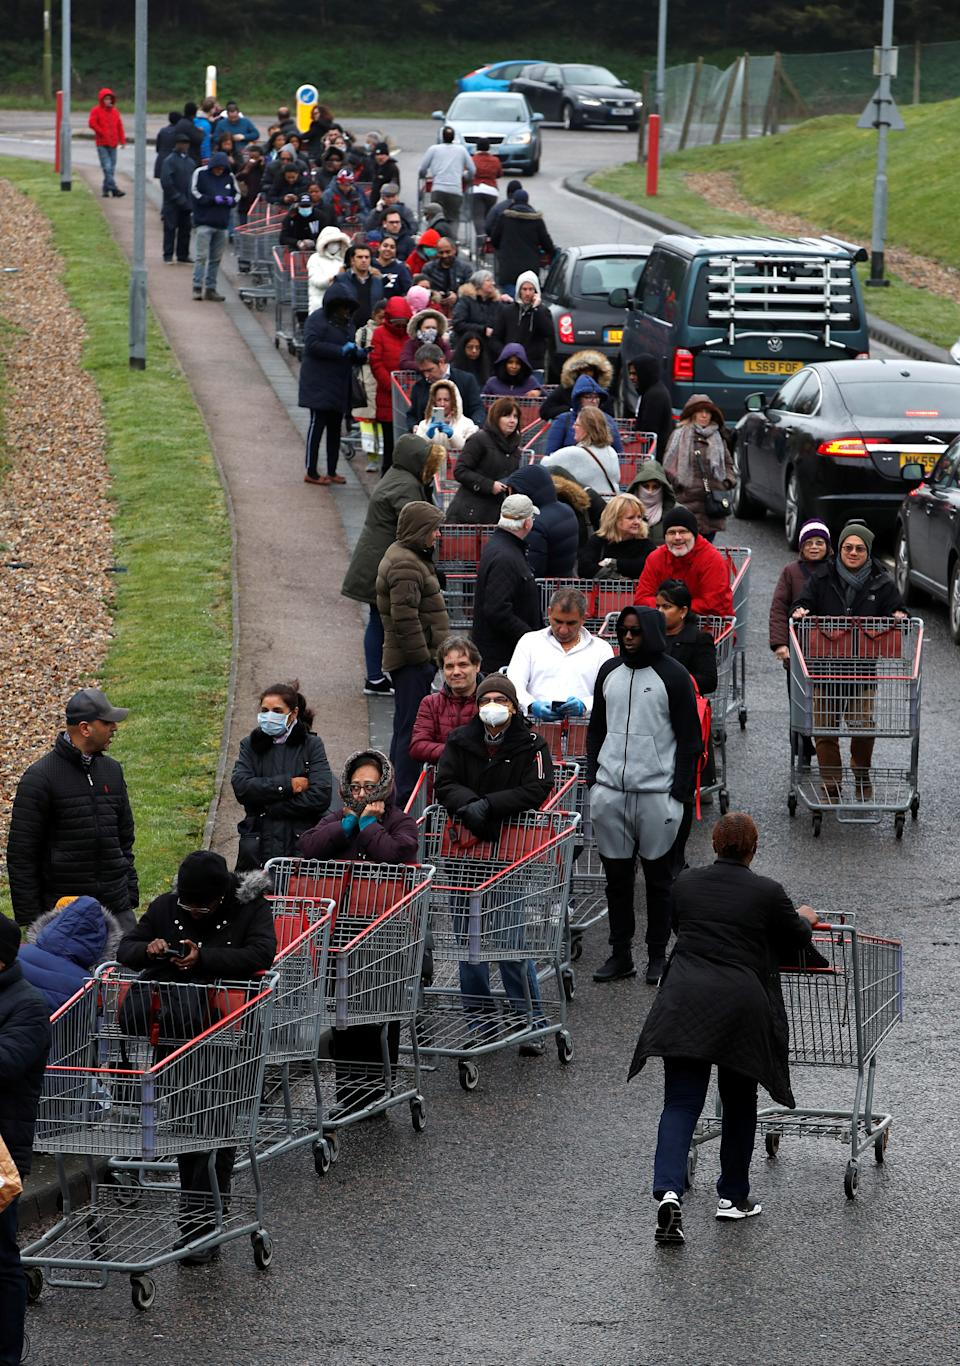 People queue outside of a Costco store in Watford, as the spread of the coronavirus disease (COVID-19) continues, Britain, March 19, 2020. REUTERS/Paul Childs